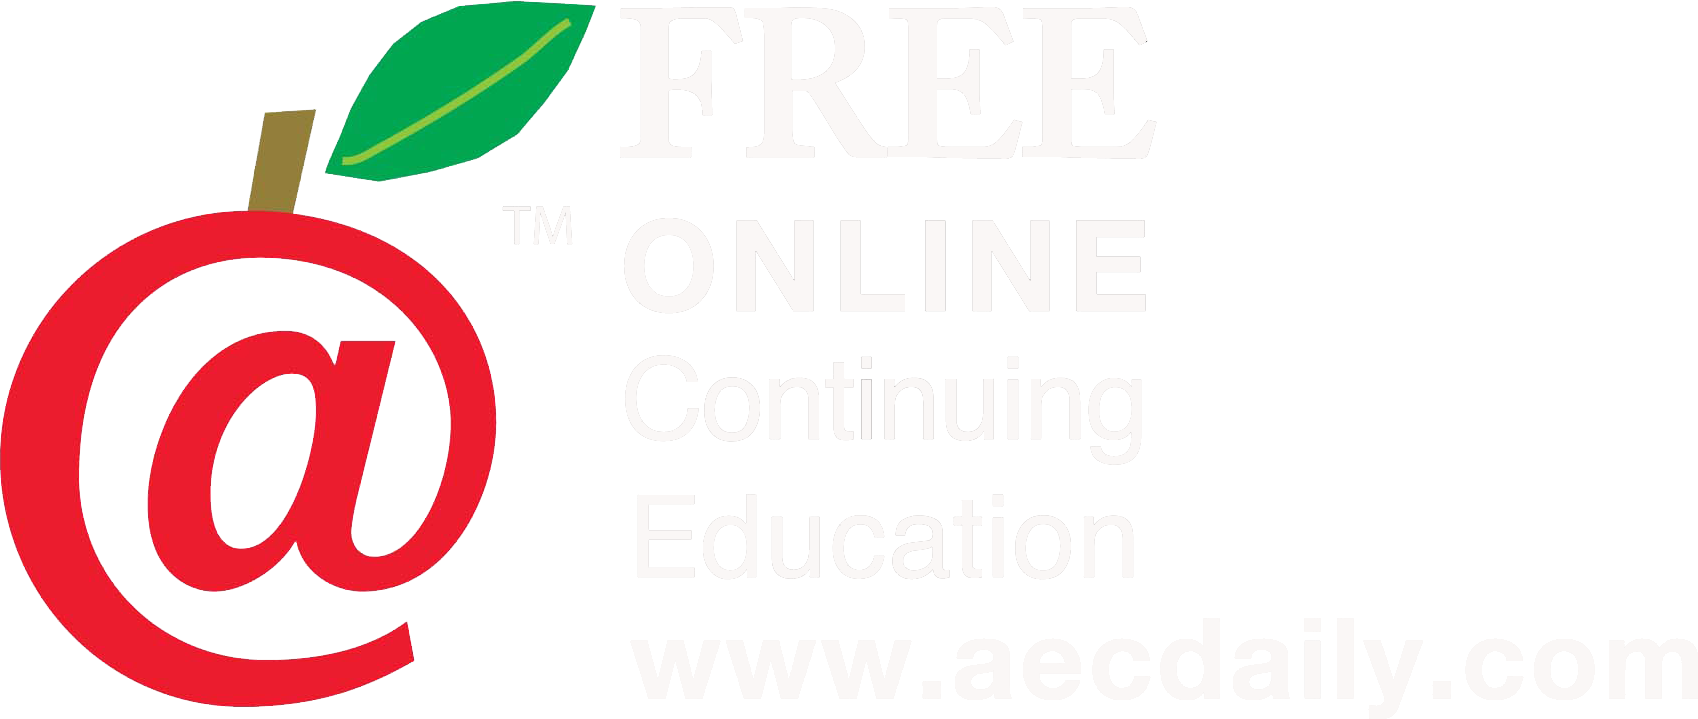 online continued education